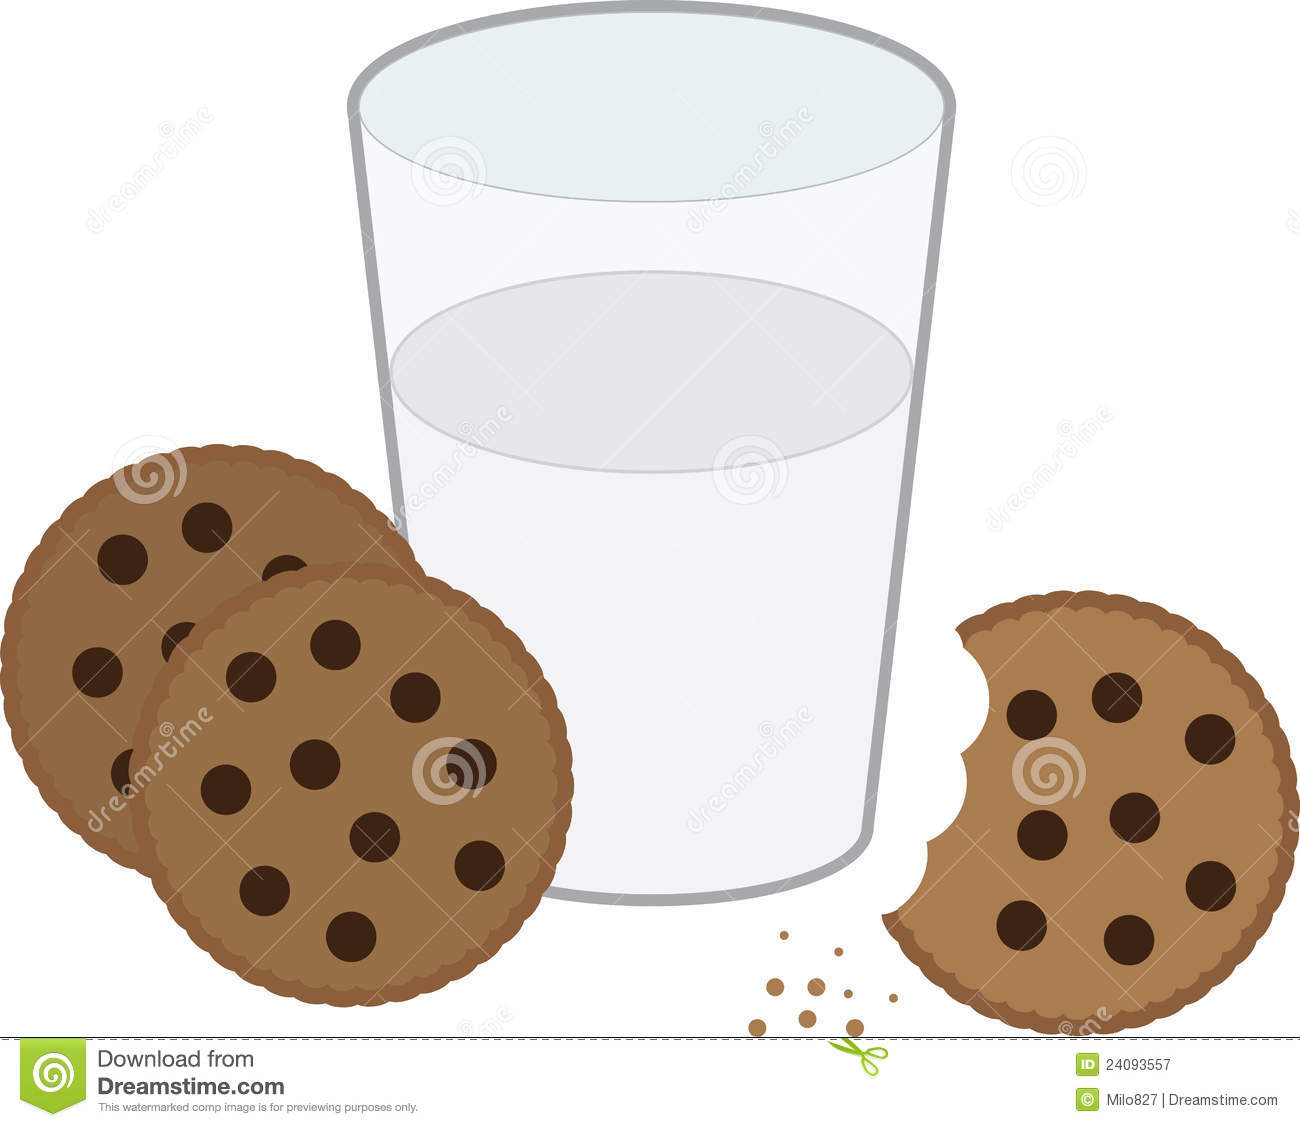 Cookies And Milk Royalty Free Stock Photography - Image: 24093557